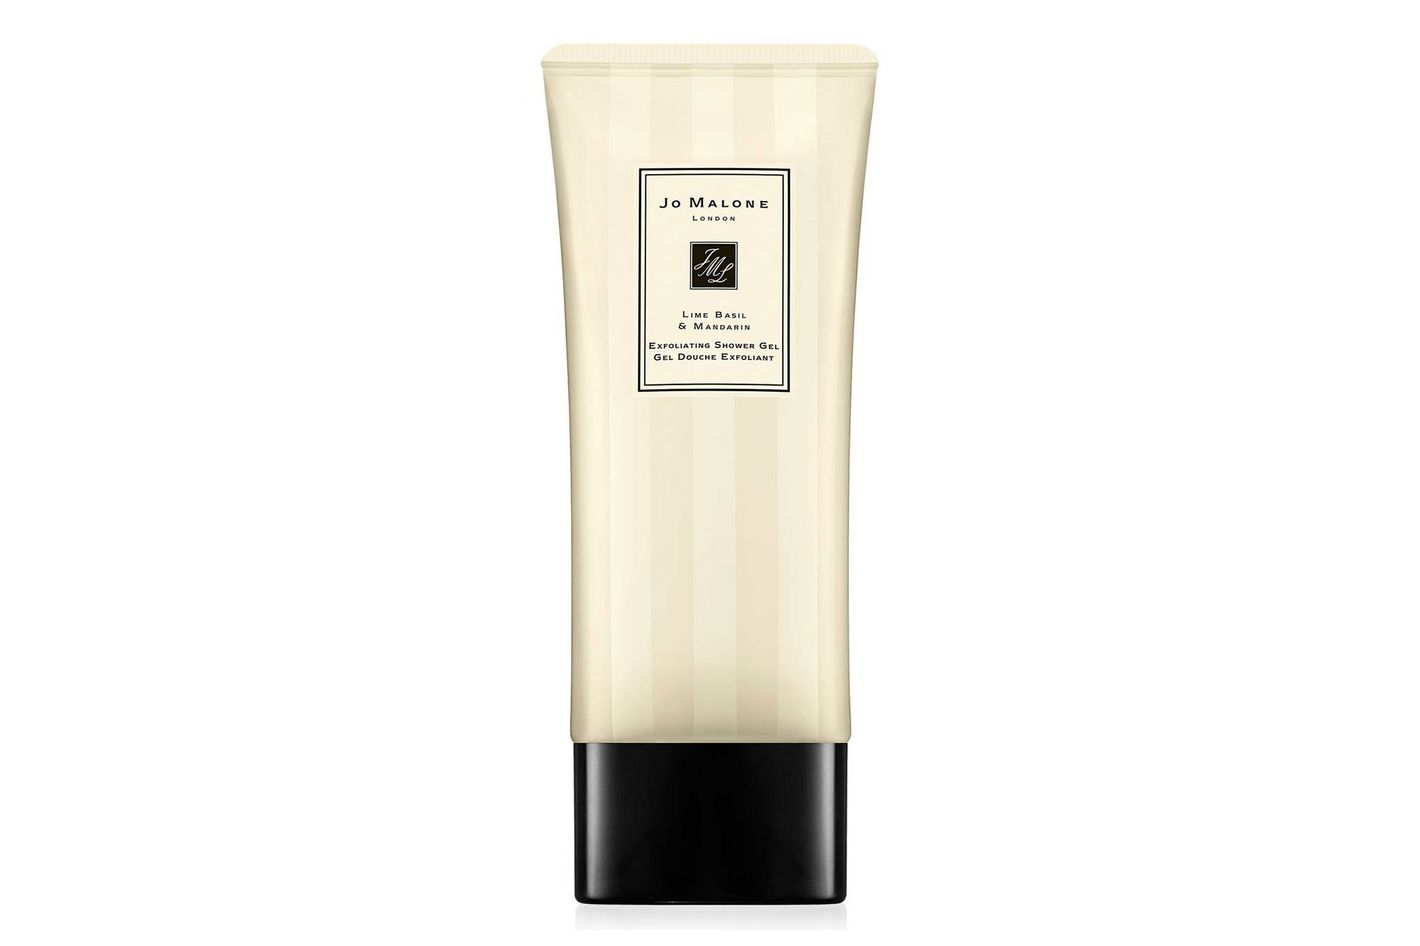 Jo Malone Lime Basil & Mandarin Exfoliating Shower Gel